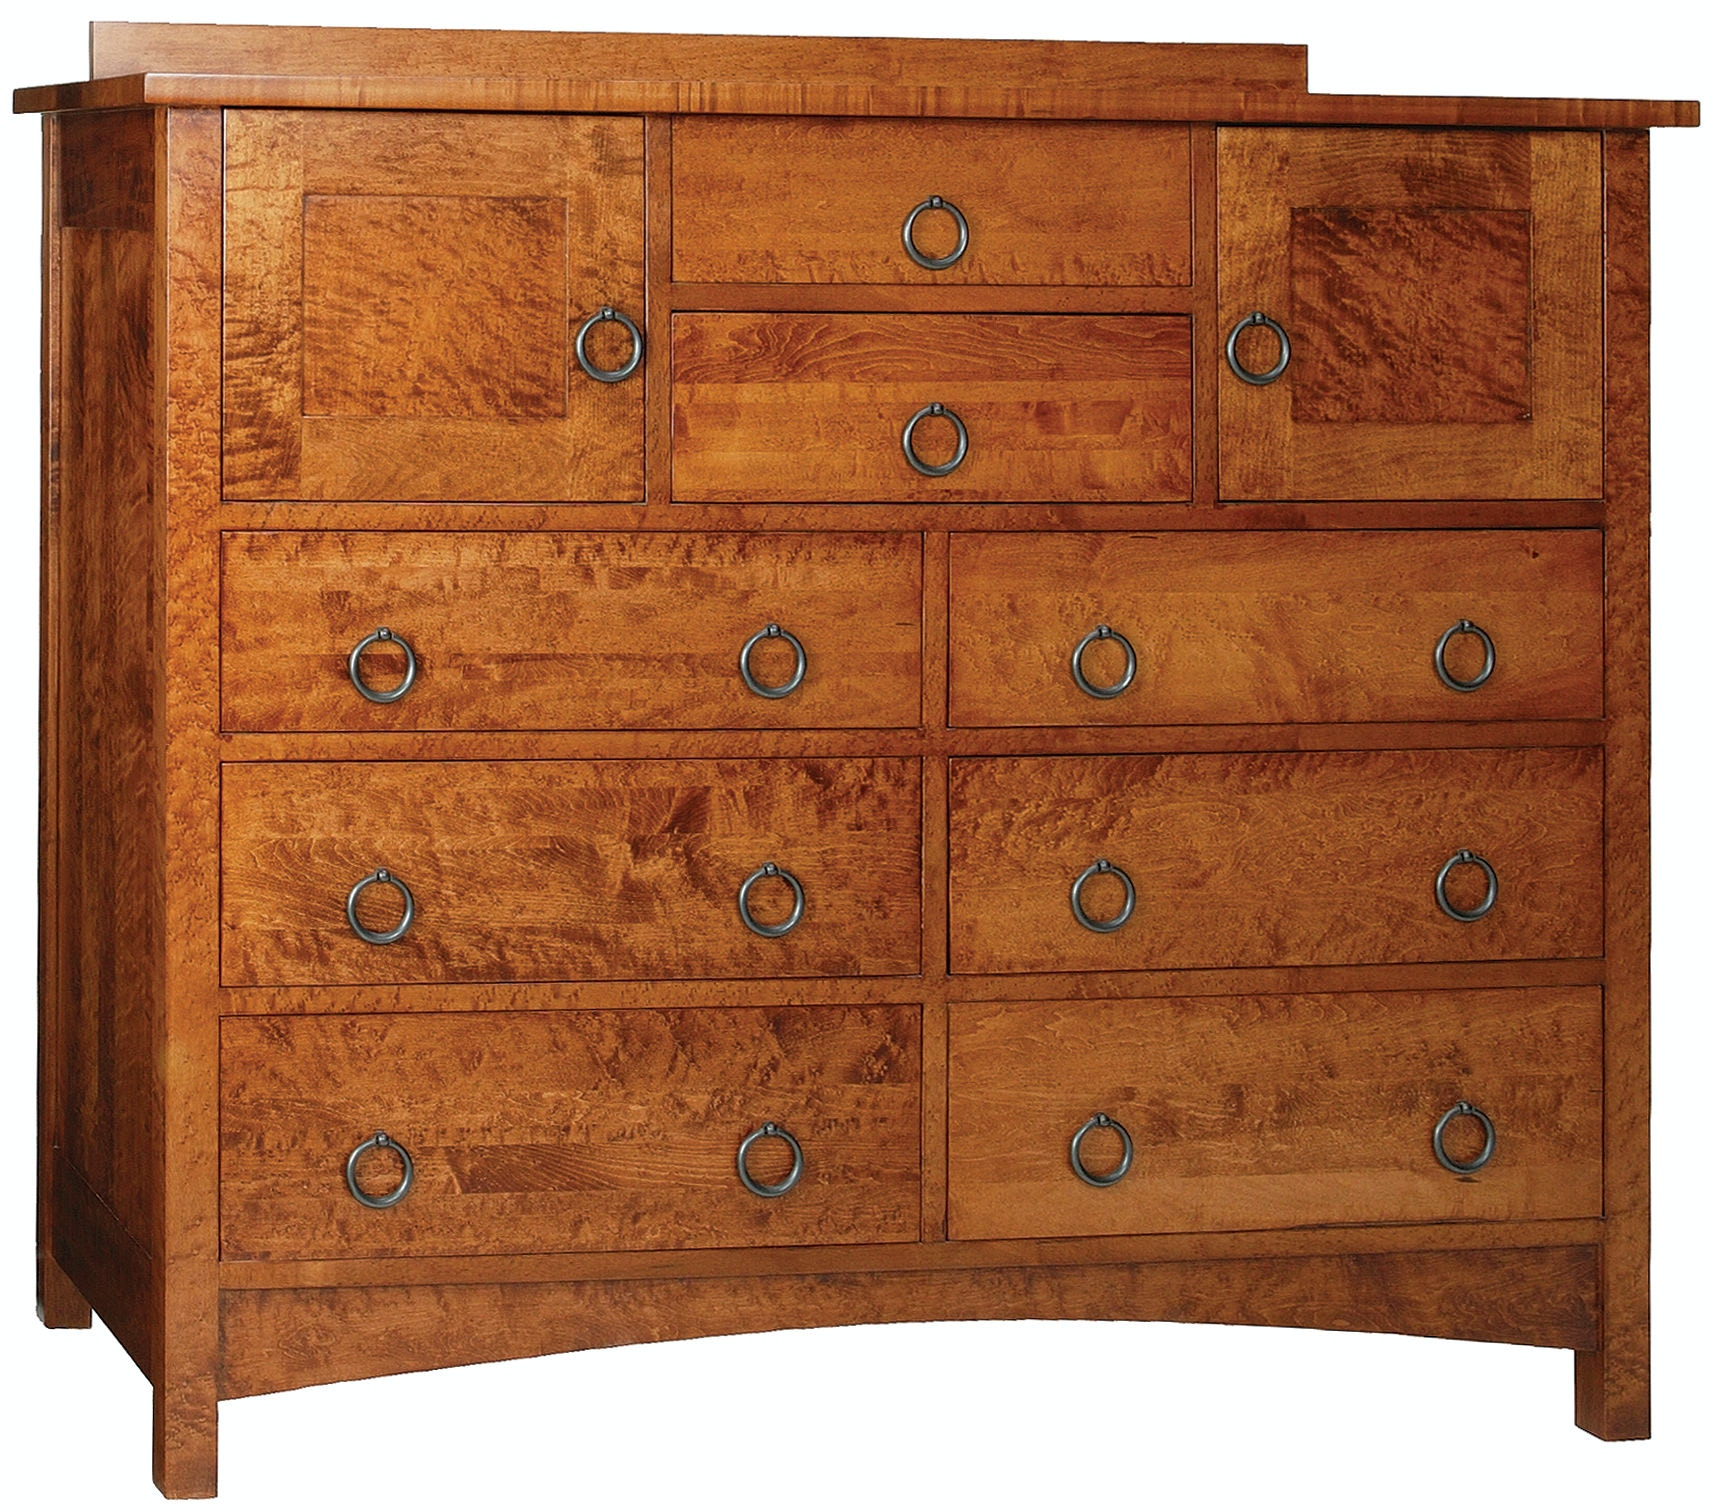 Cove Hollow Durango 10 Drawer Mule Chest SW8110